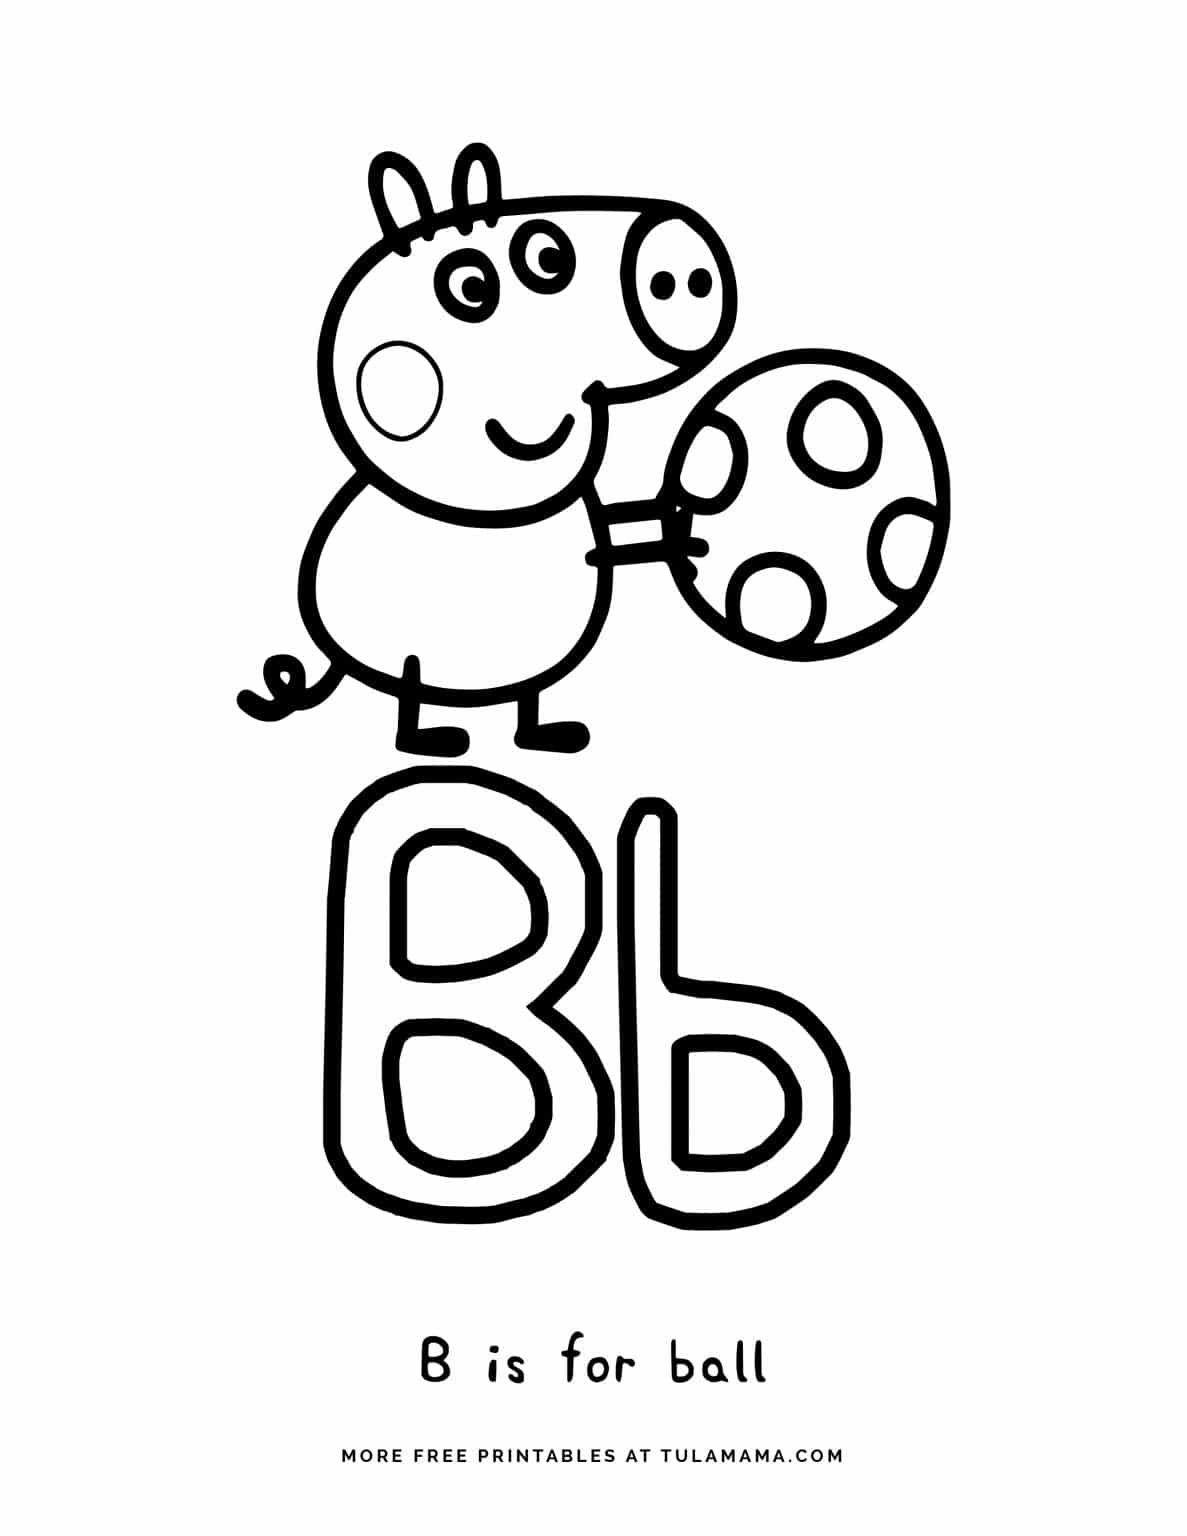 Free Printable Peppa Pig Abc Coloring Pages For Preschoolers Abc Coloring Pages Abc Coloring Letter A Coloring Pages [ 1536 x 1187 Pixel ]